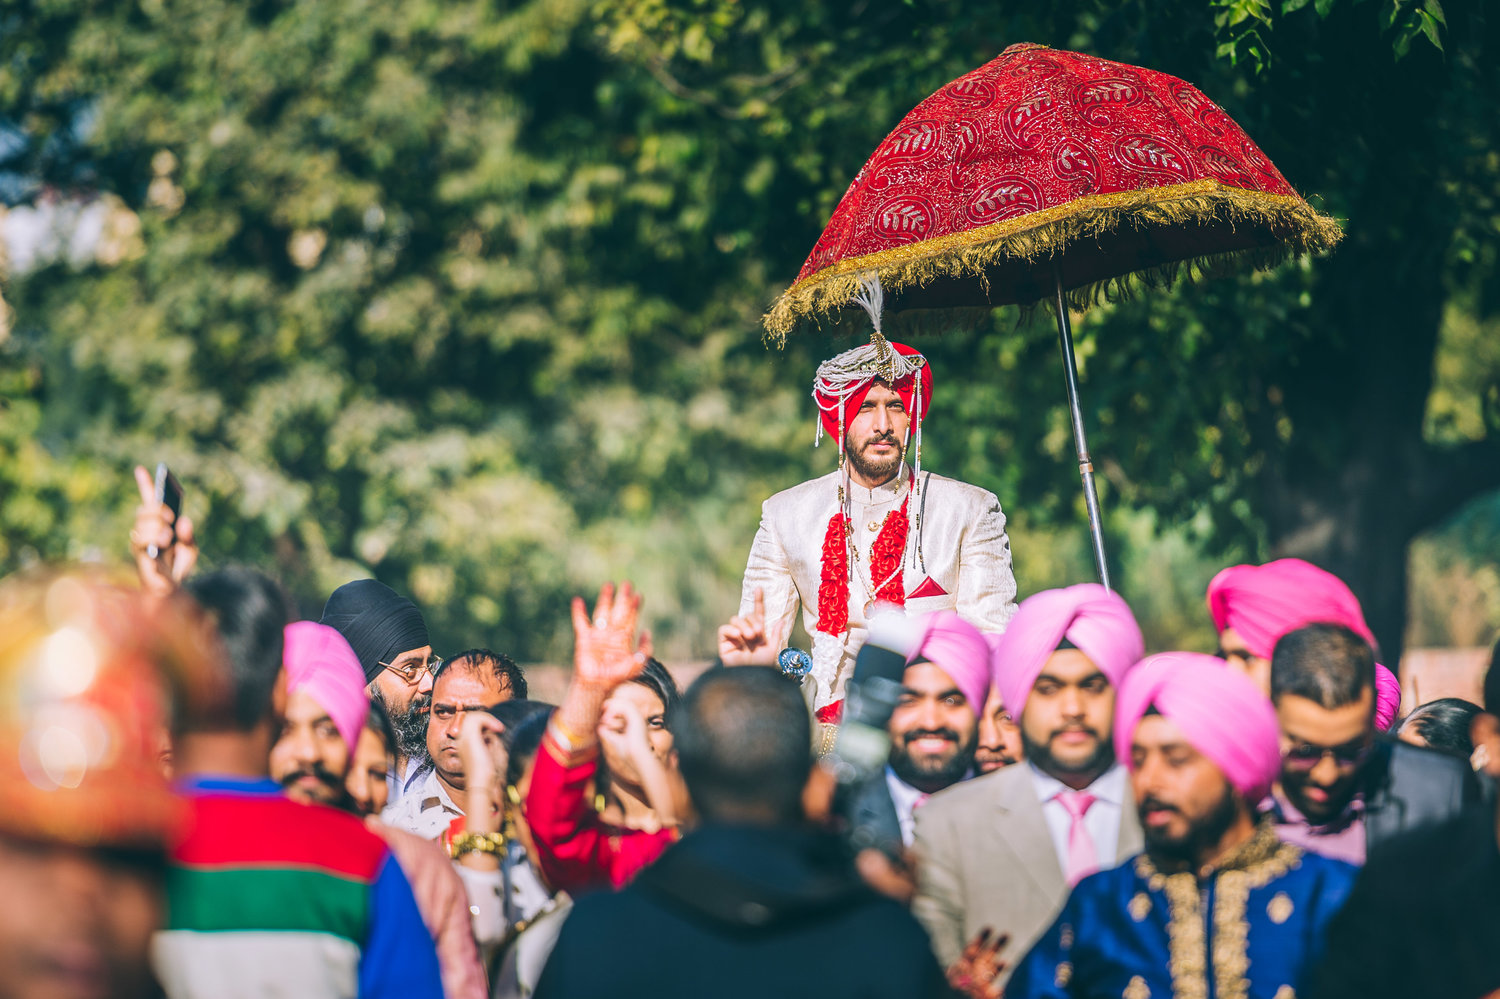 Kelvin Luffs Photography in India - Traditional Sikh Wedding (Part 2